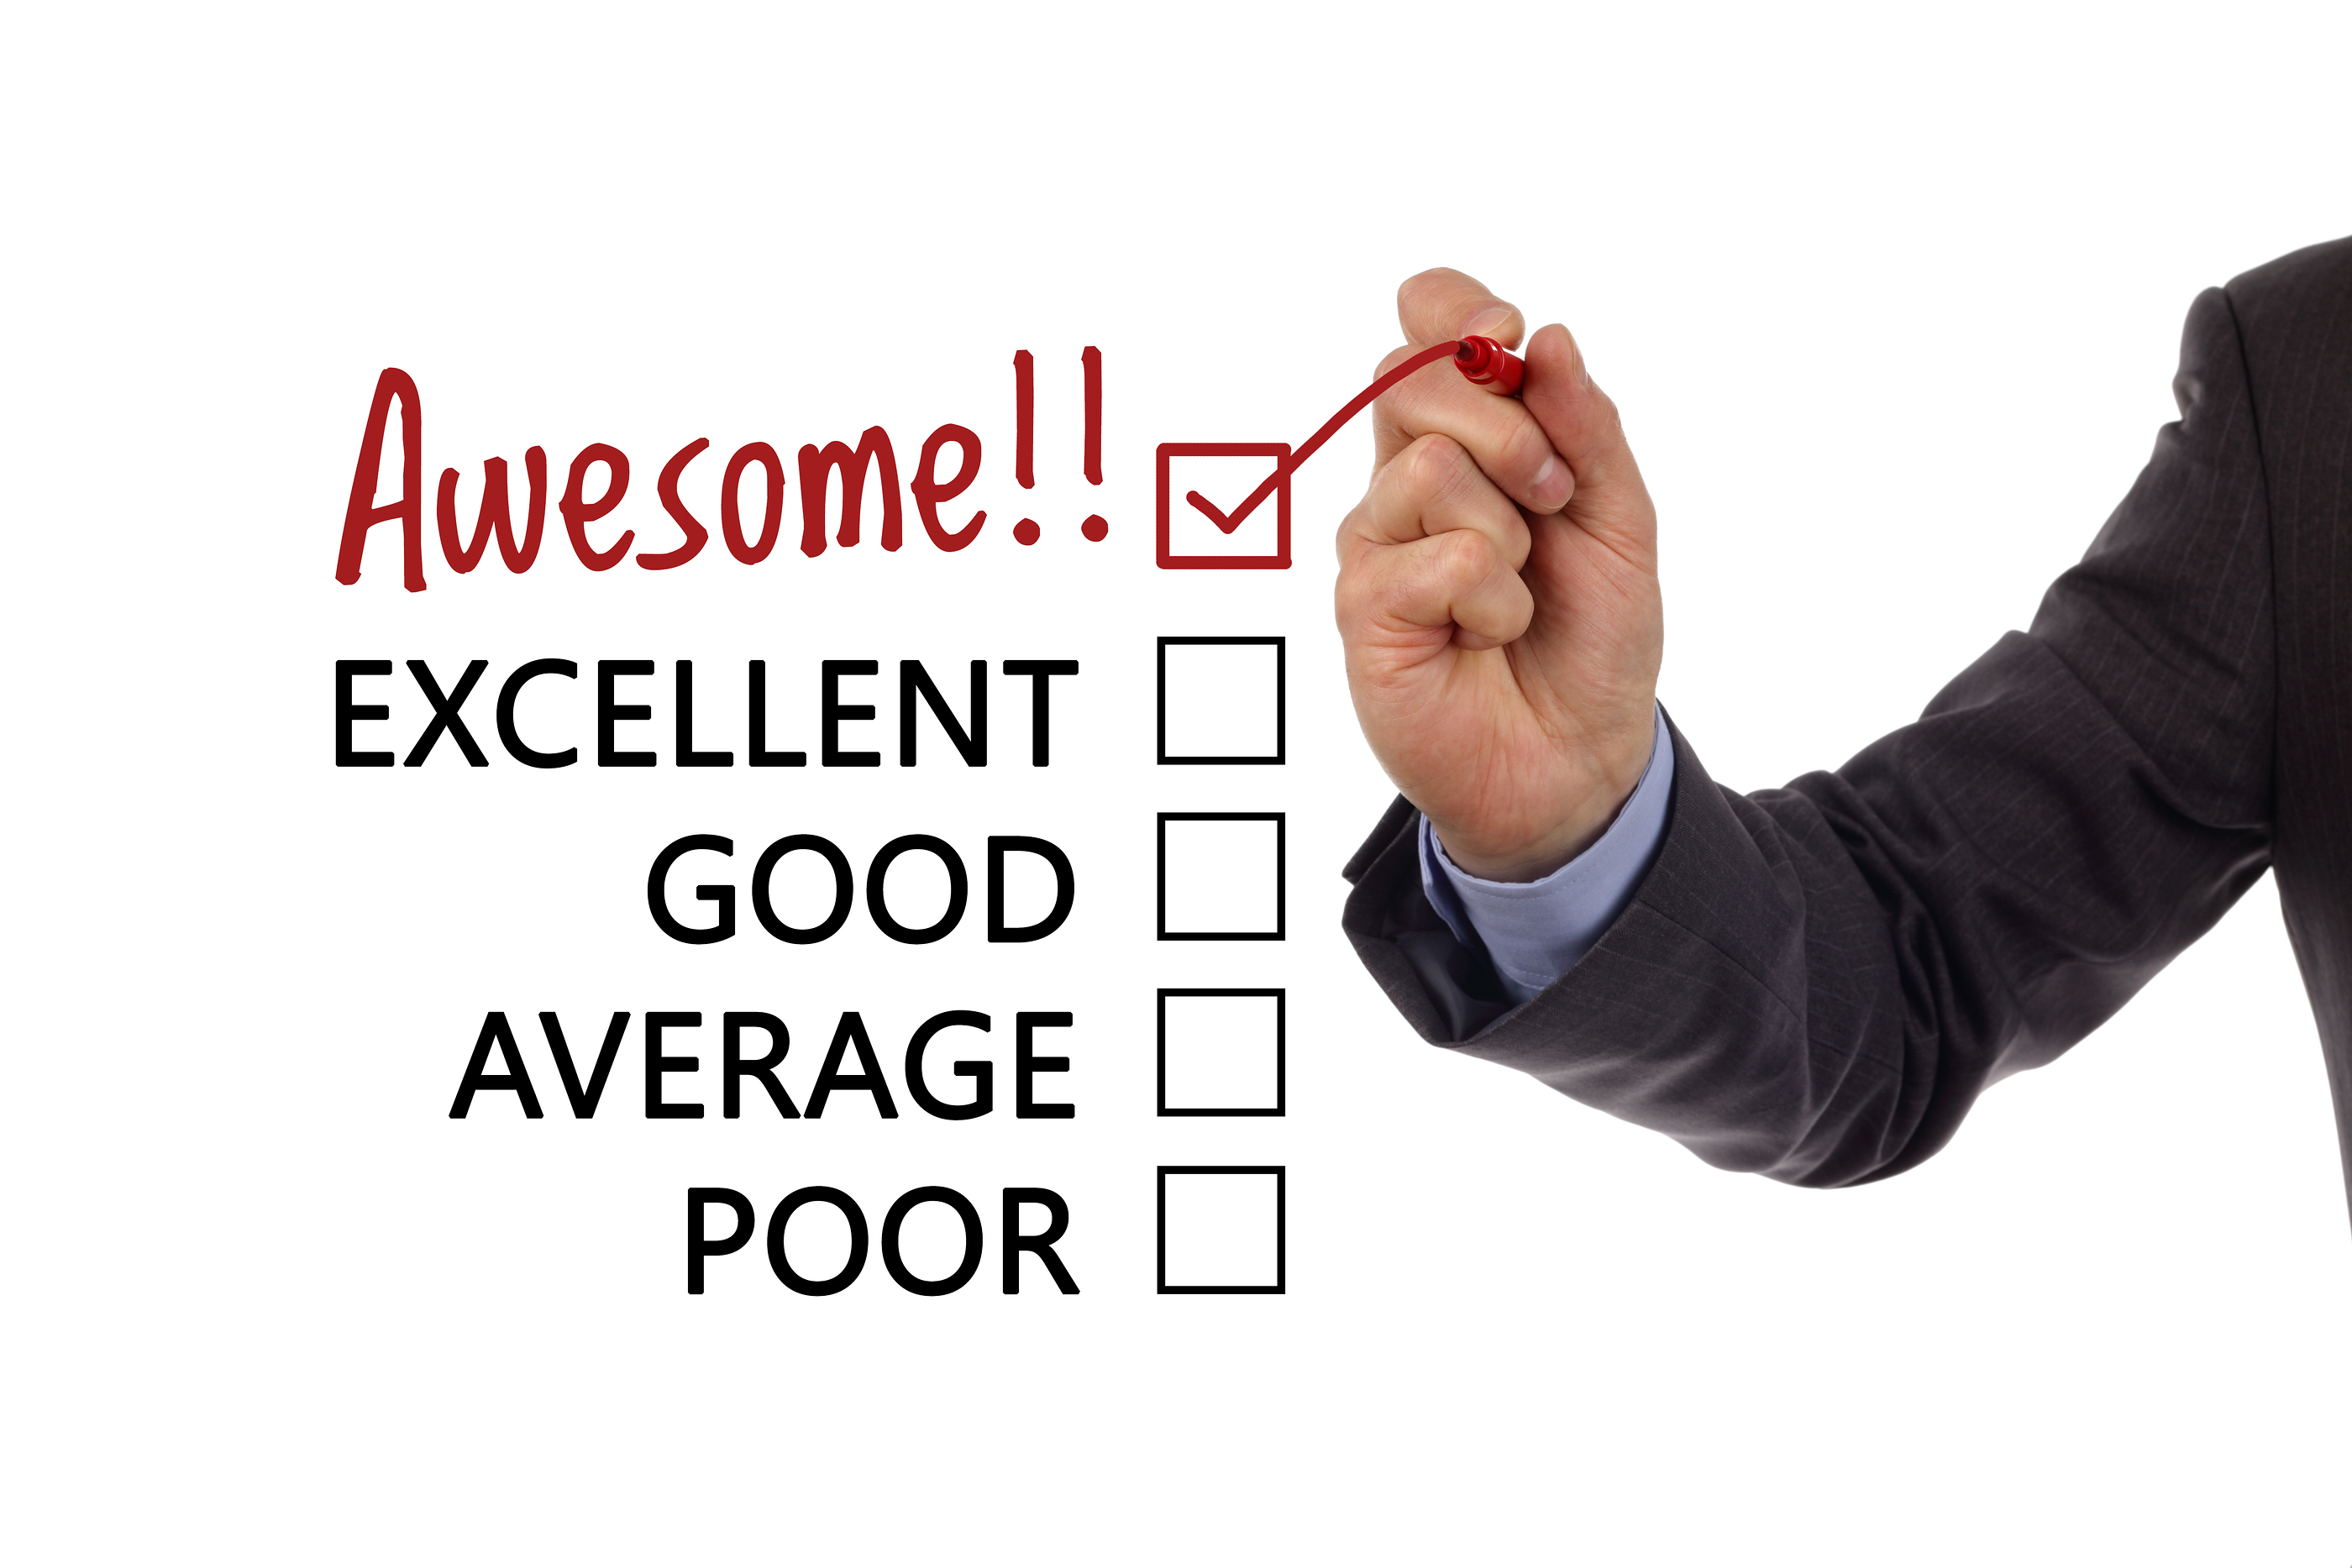 Tick placed in awesome checkbox on customer service satisfaction survey form.jpg